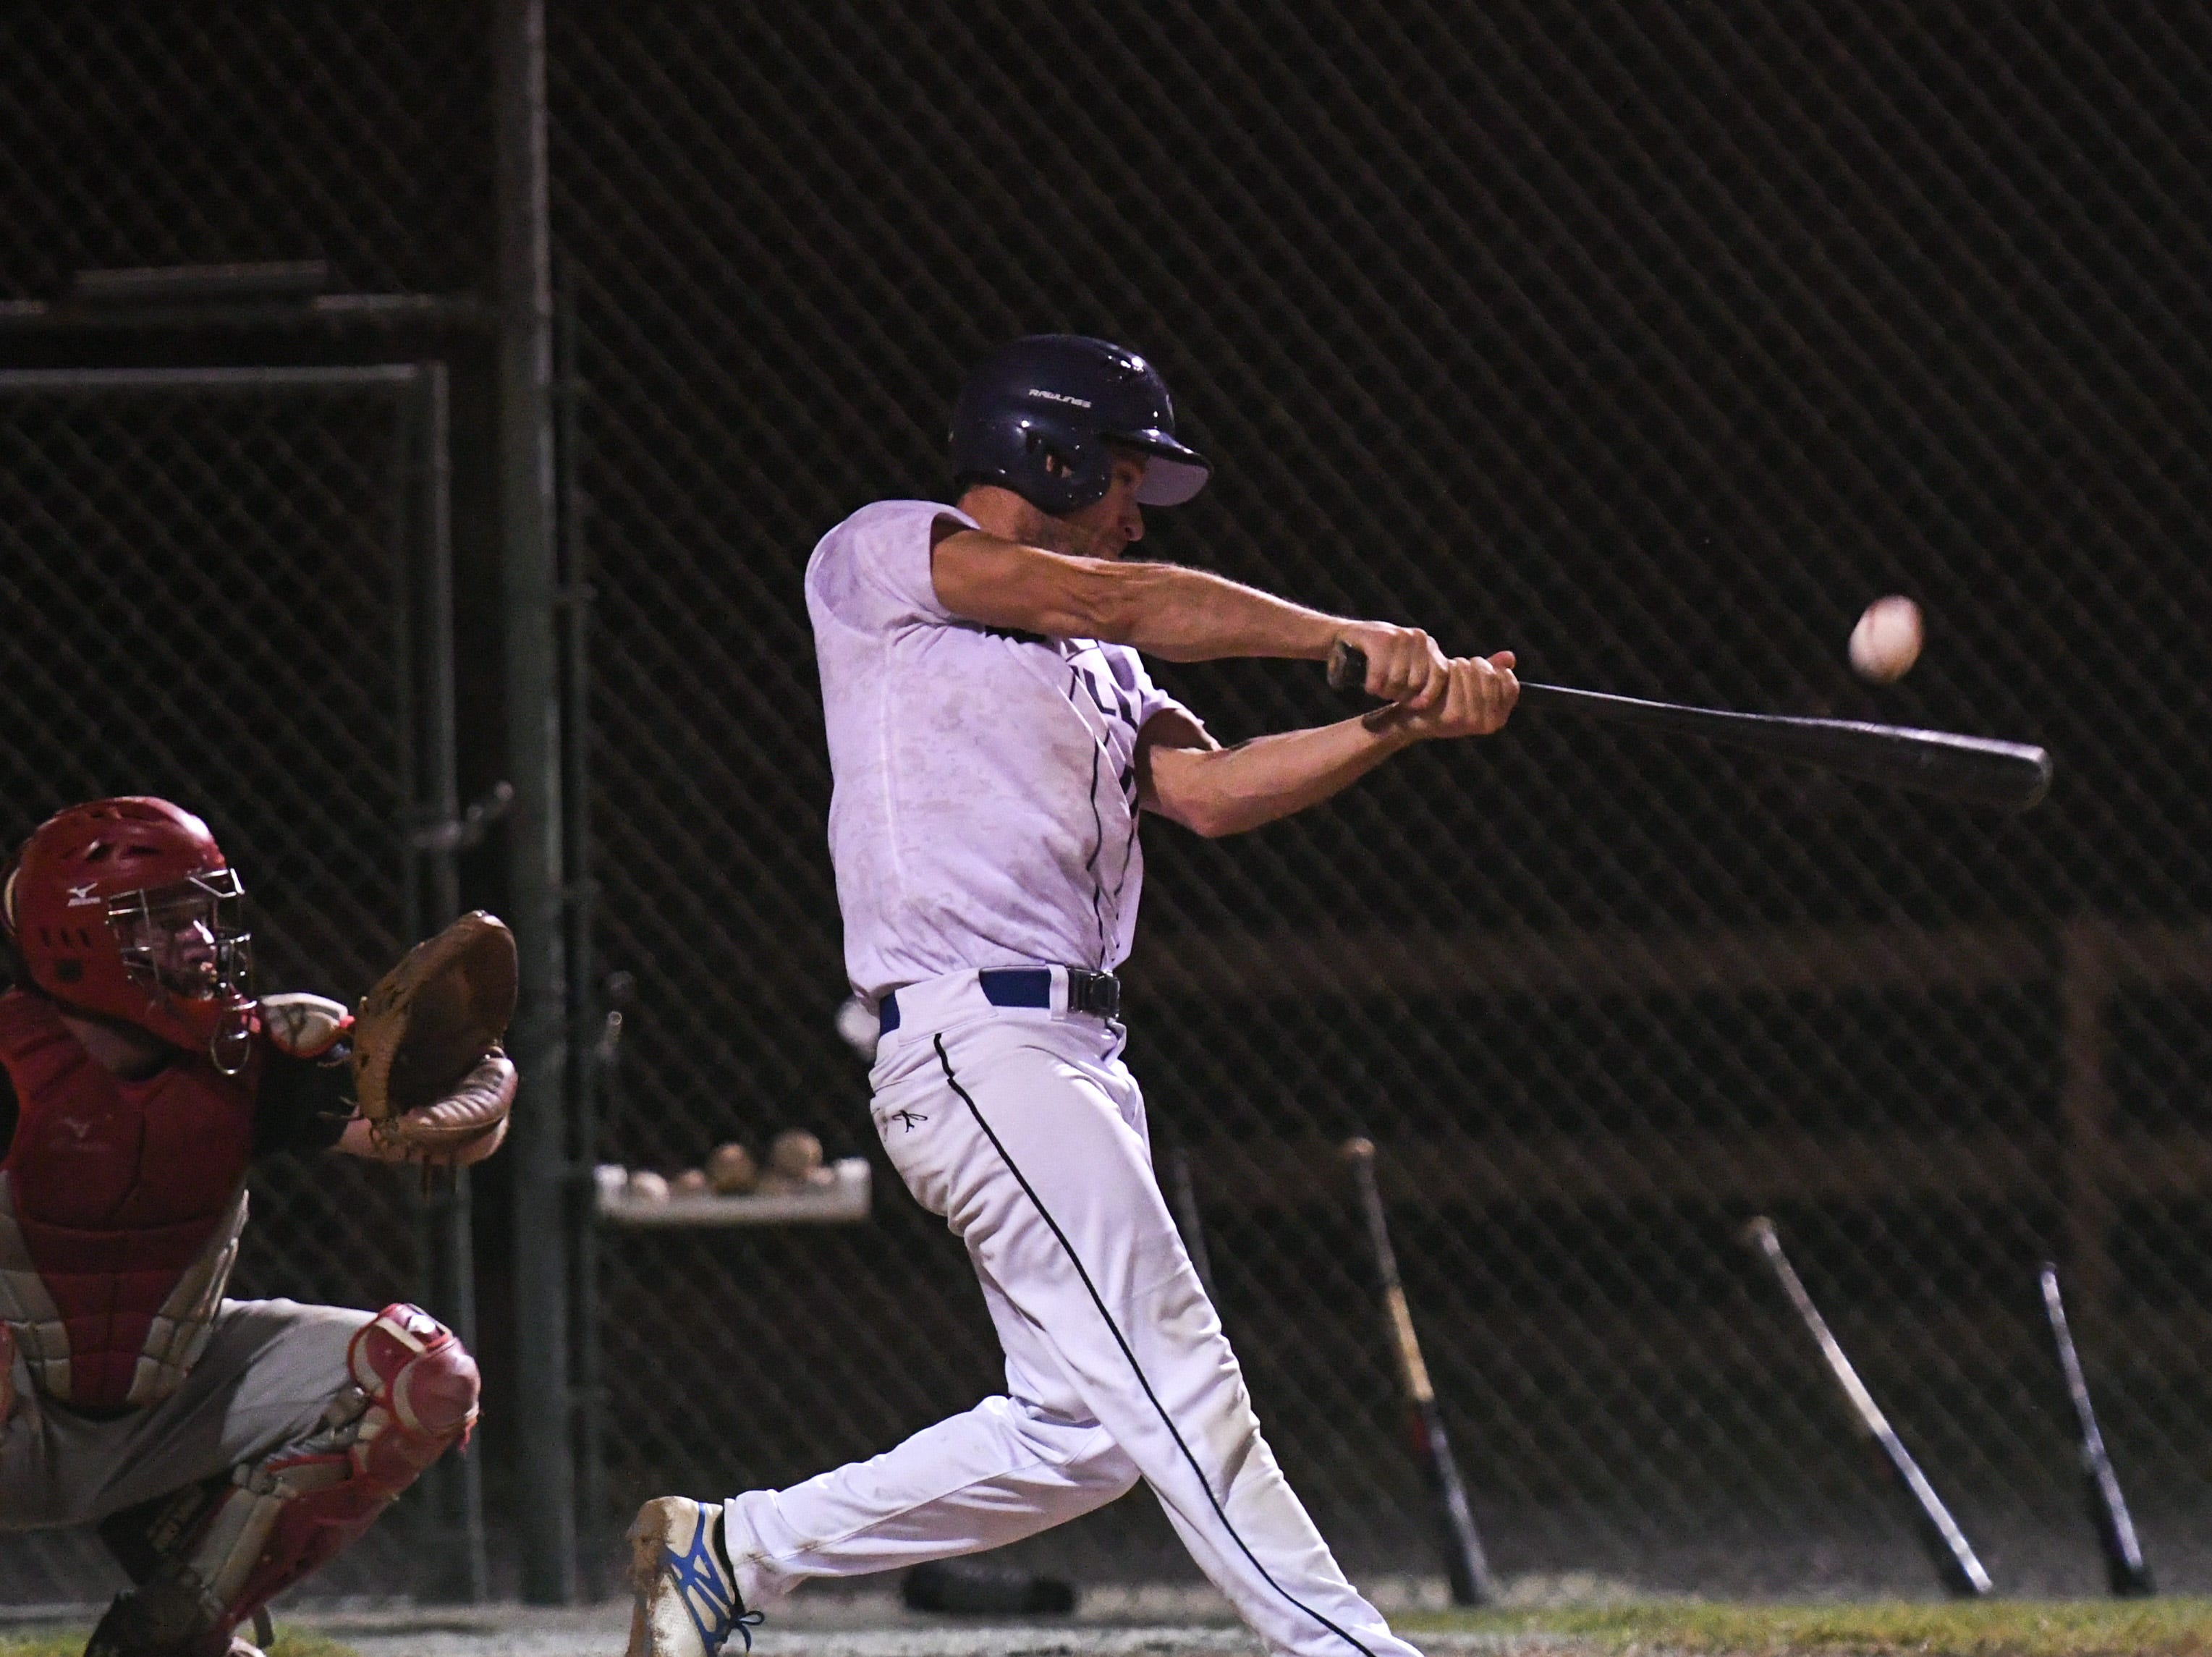 David Capibianco bats during a game in the new Ty Cobb Senior Baseball League in Salisbury on Tuesday, Oct 9, 2018.